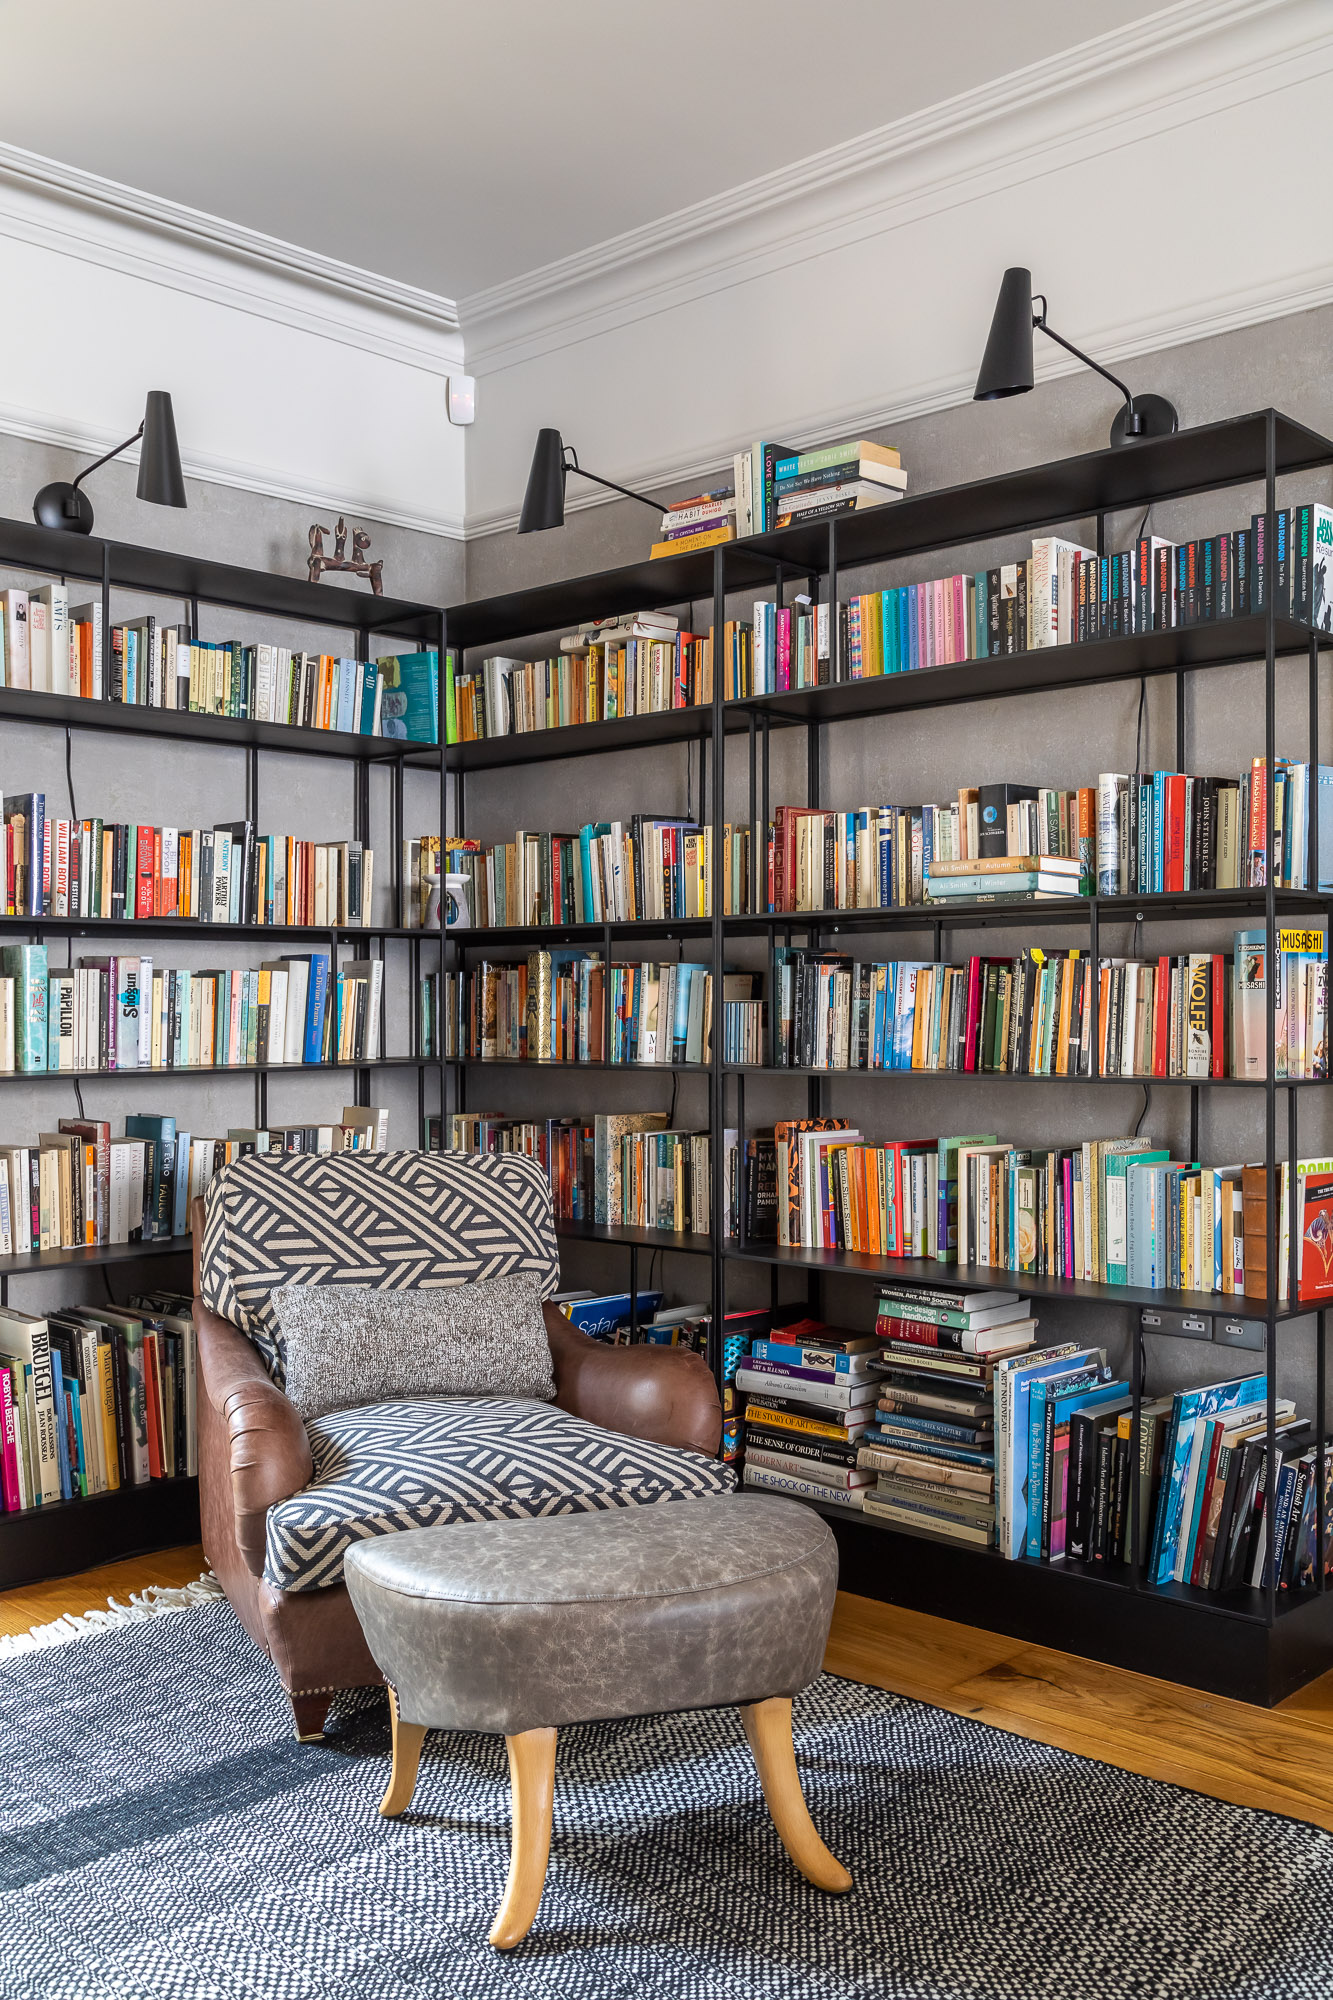 jonathan bond, interior photographer, bookcase, mill road, cambridge